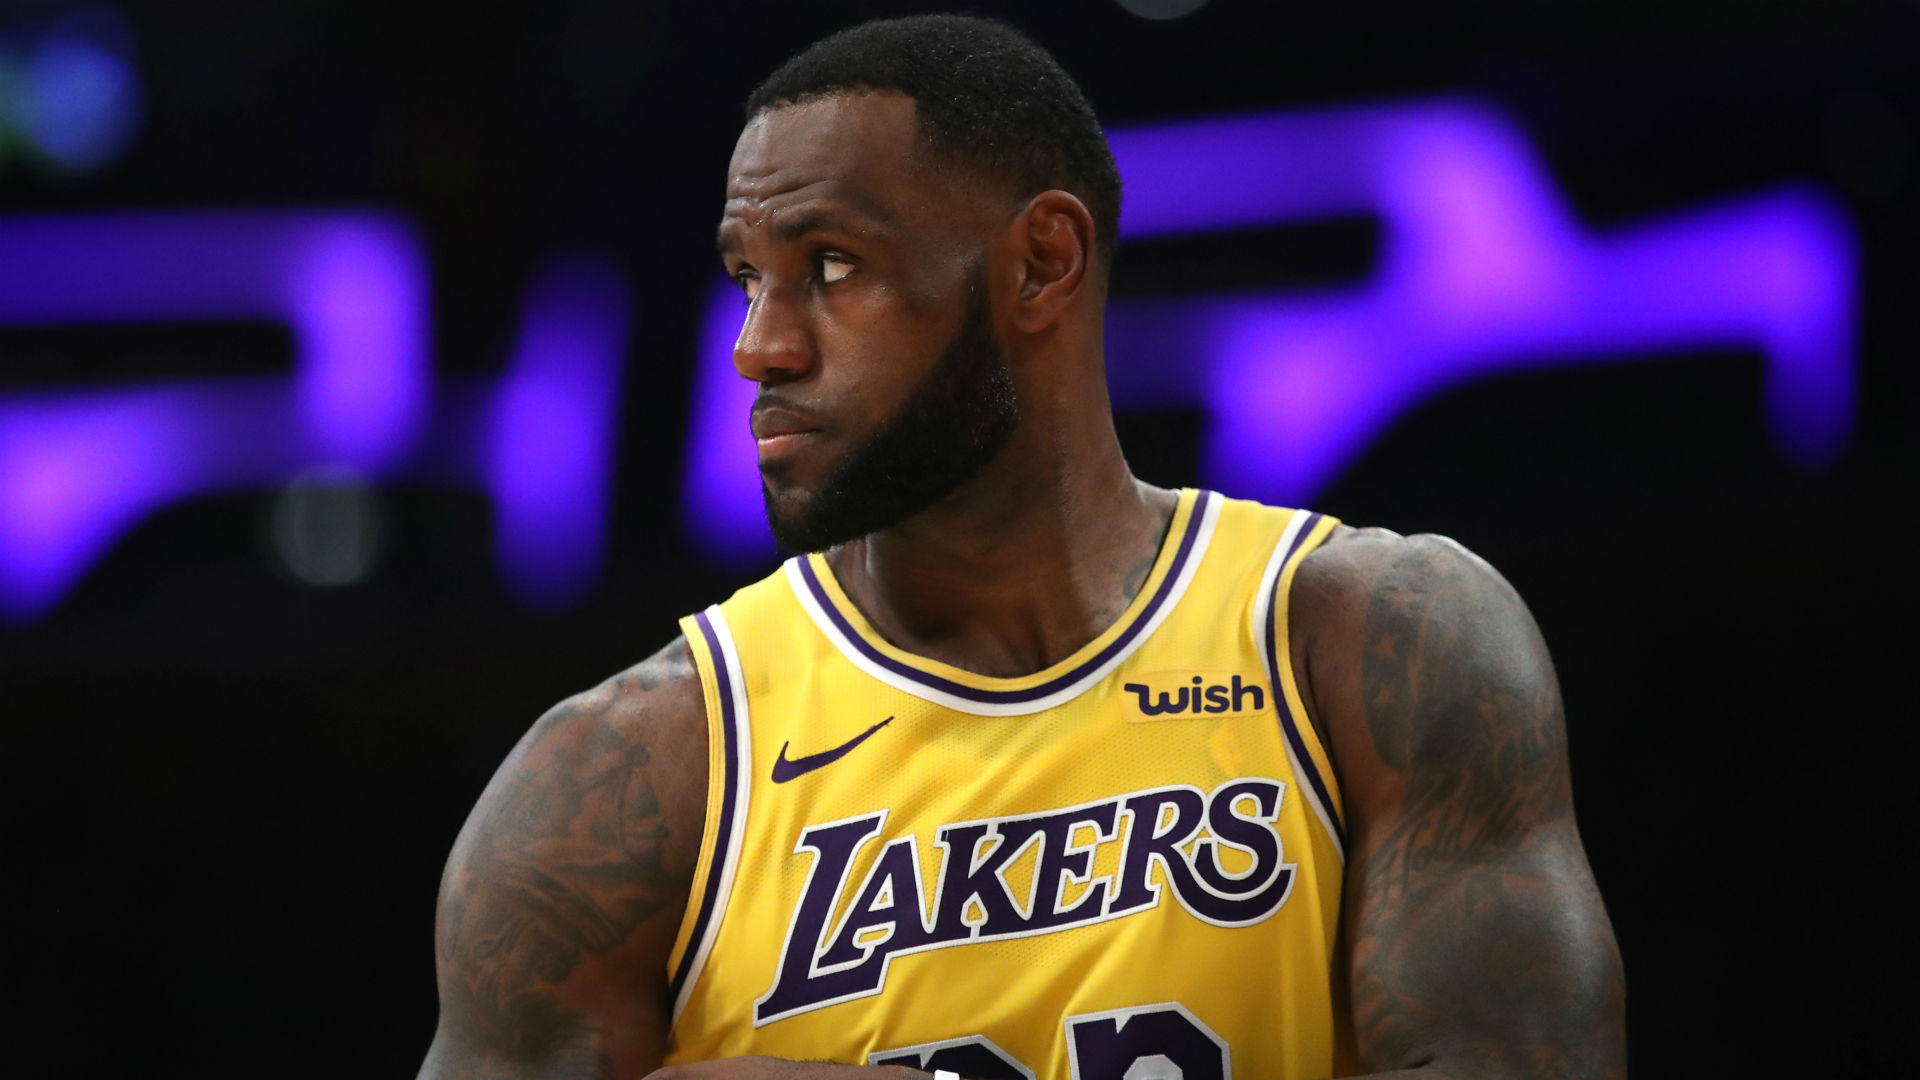 Lakers owner Jeanie Buss thought LeBron James' agent leaked Anthony Davis rumors, report says